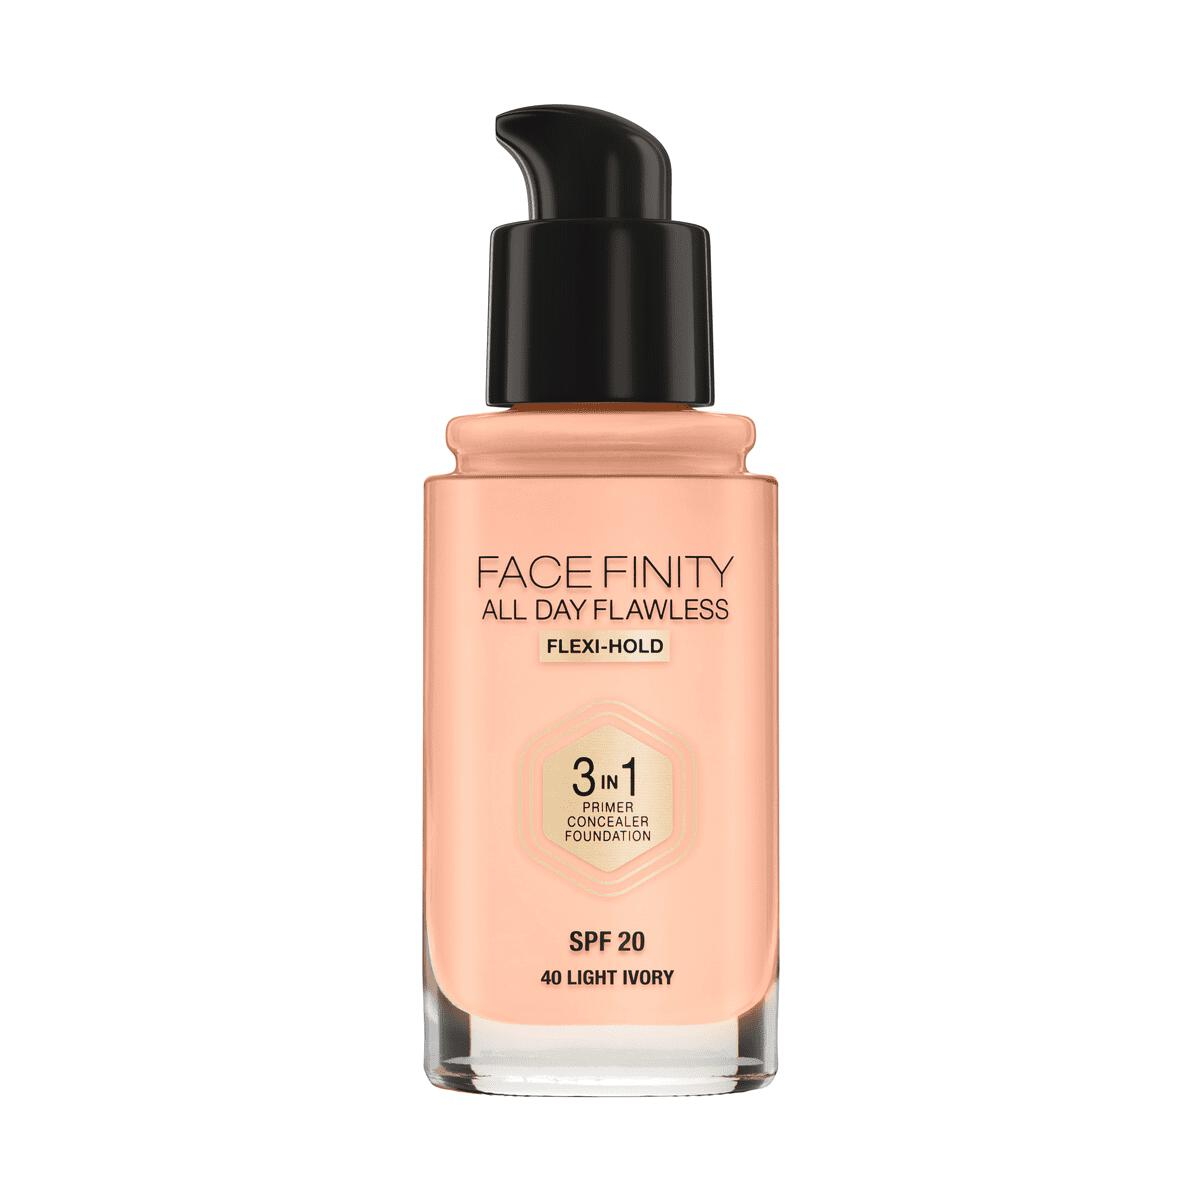 Max Factor Facefinity All Day Flawless 3-in-1 Vegan Foundation 40 Light Ivory